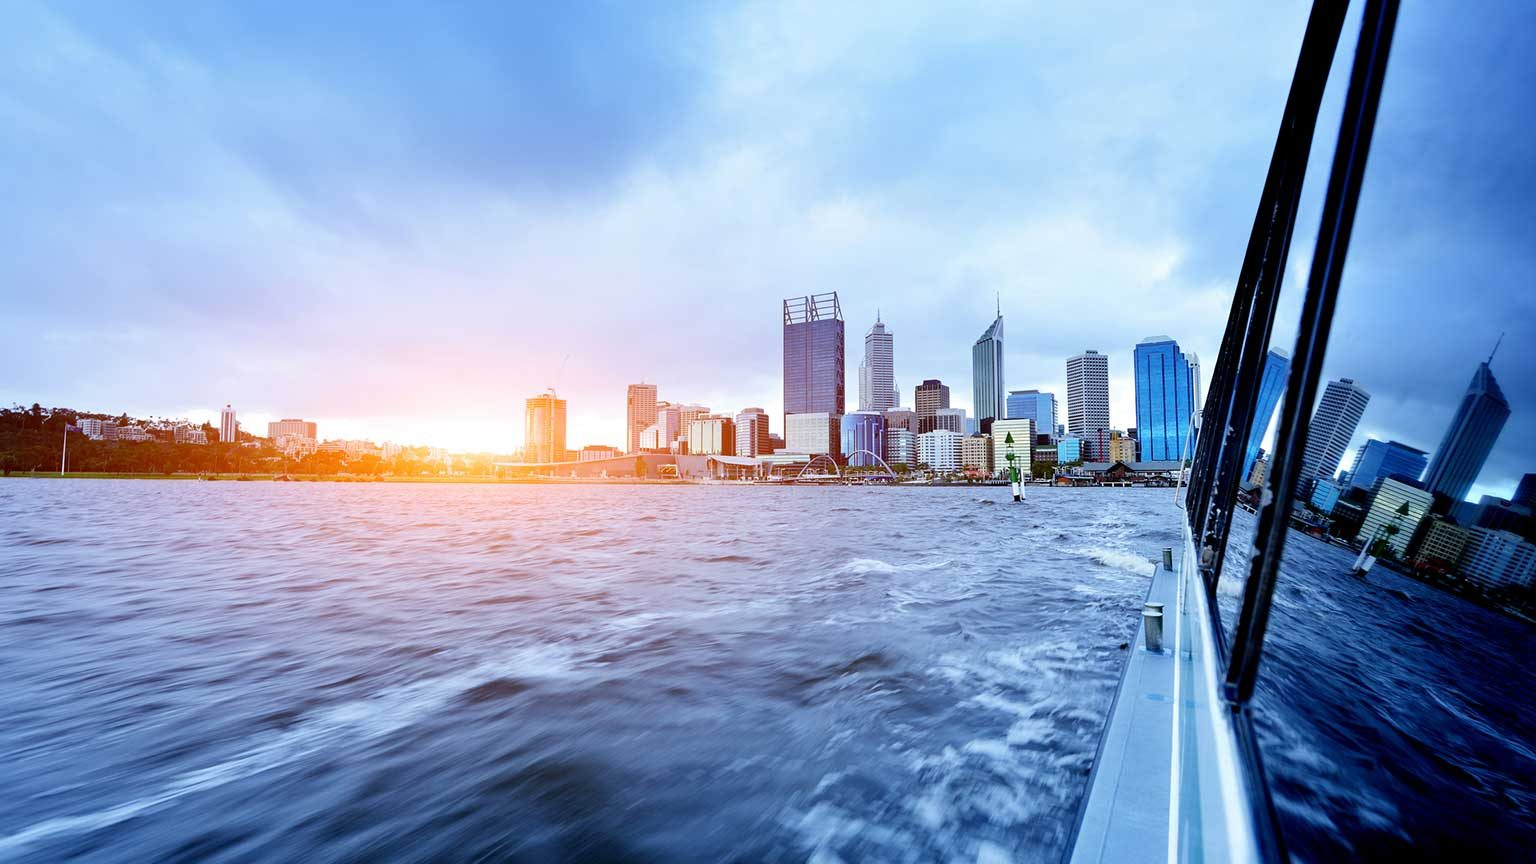 Sunset over Perth CBD from the view of a boat.